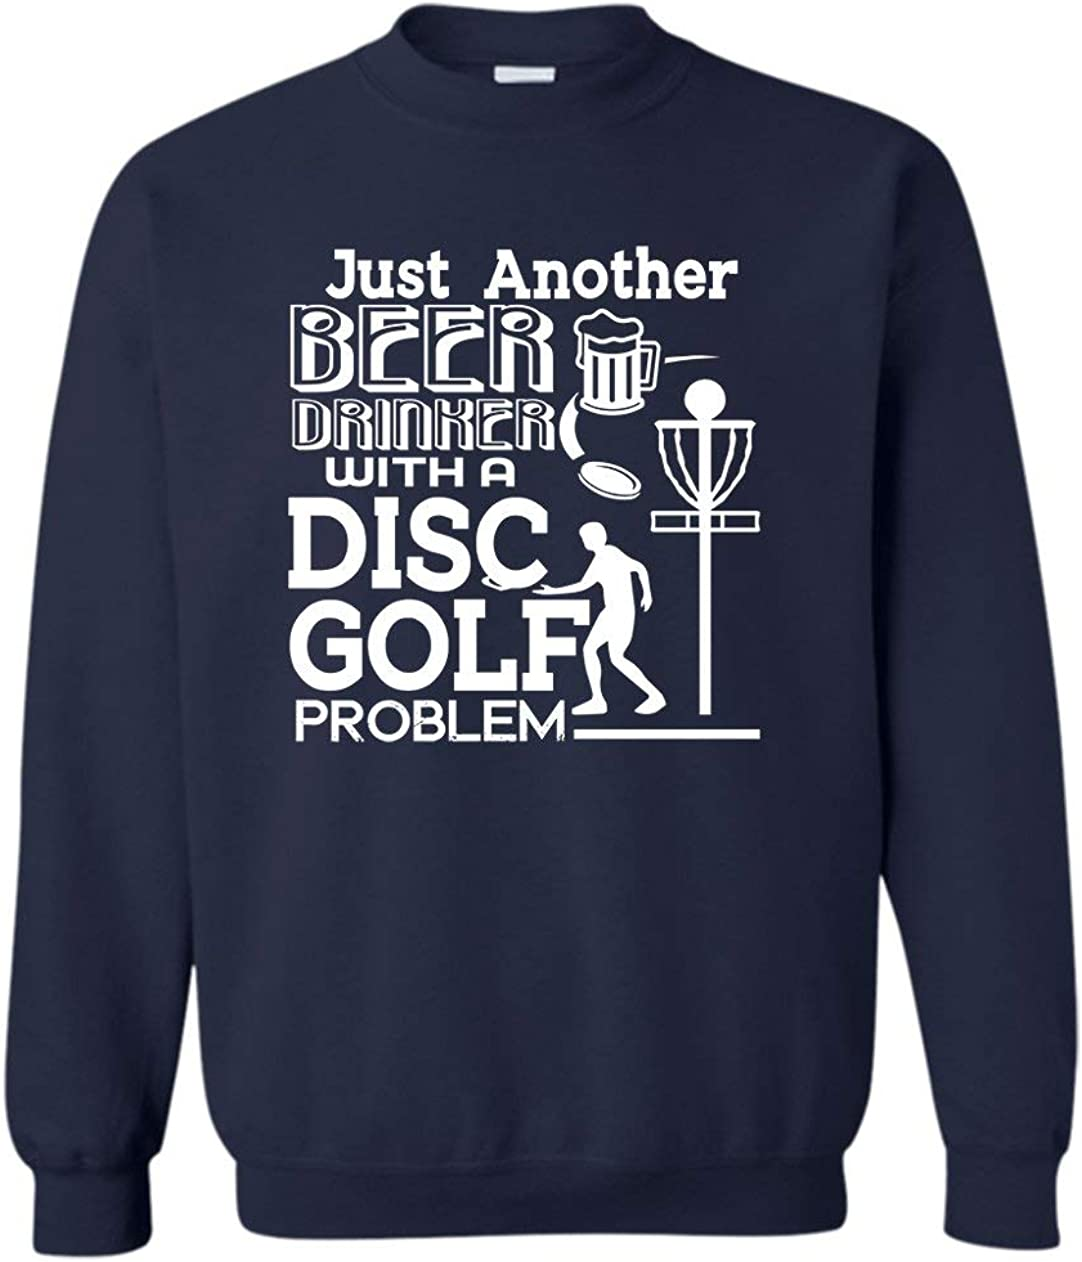 Six Banana Sacramento Mall Beer Drinker with Disc Golf Pullover Sweatshi Now free shipping Problem